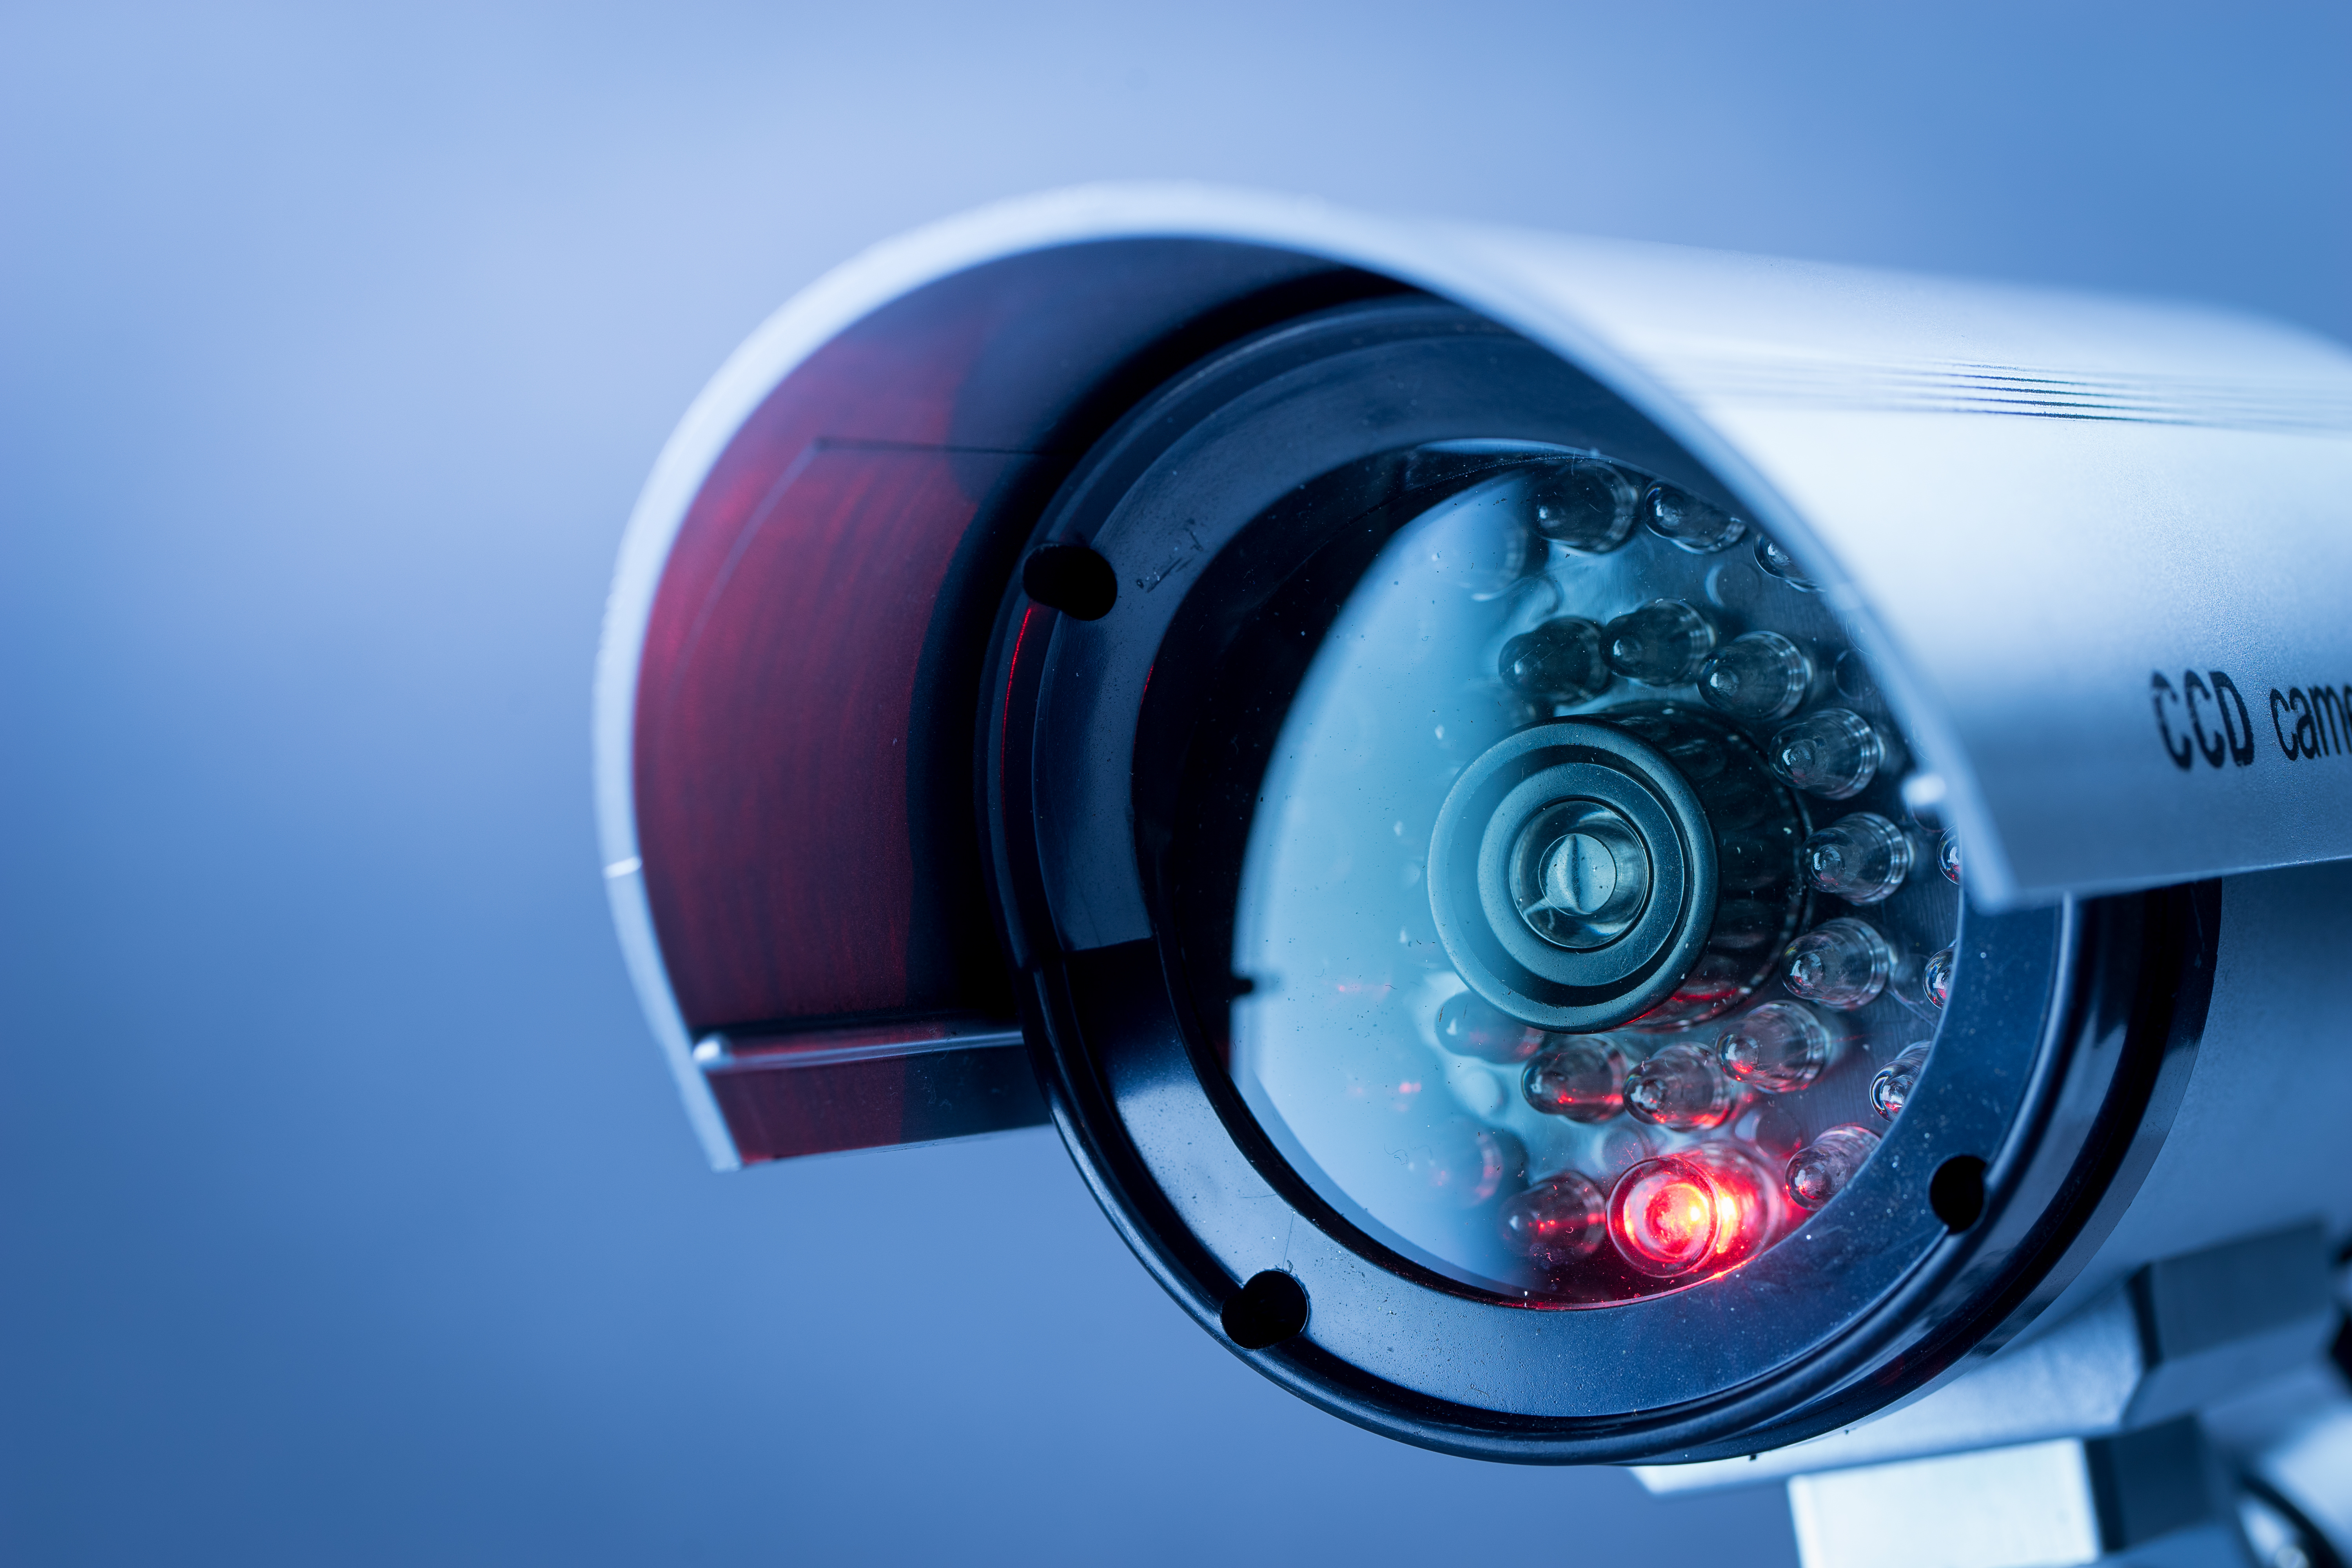 How Effective Is Cctv Security For Protecting Businesses